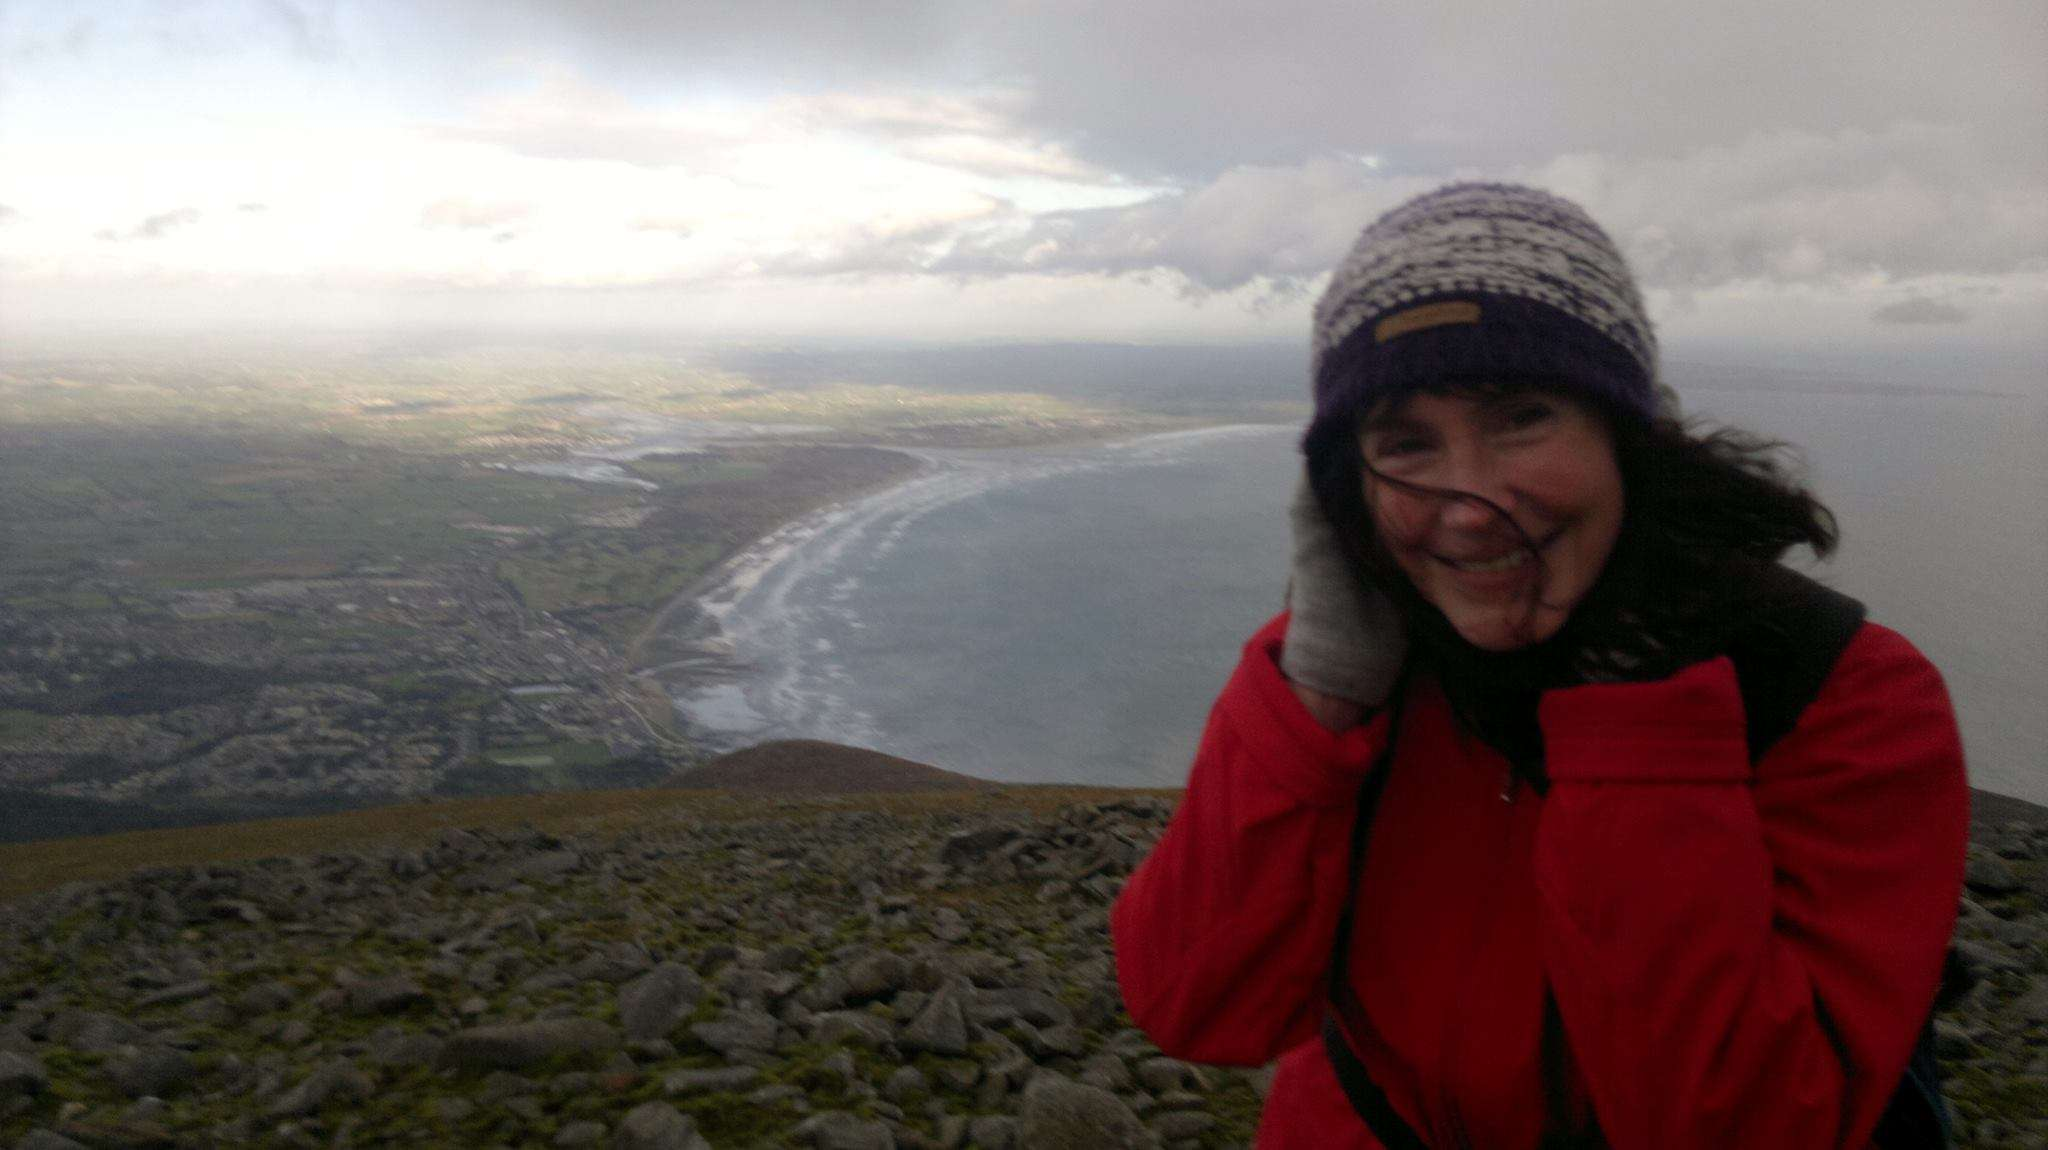 Ann Marie Dunne on mountain with county Down coastline in background